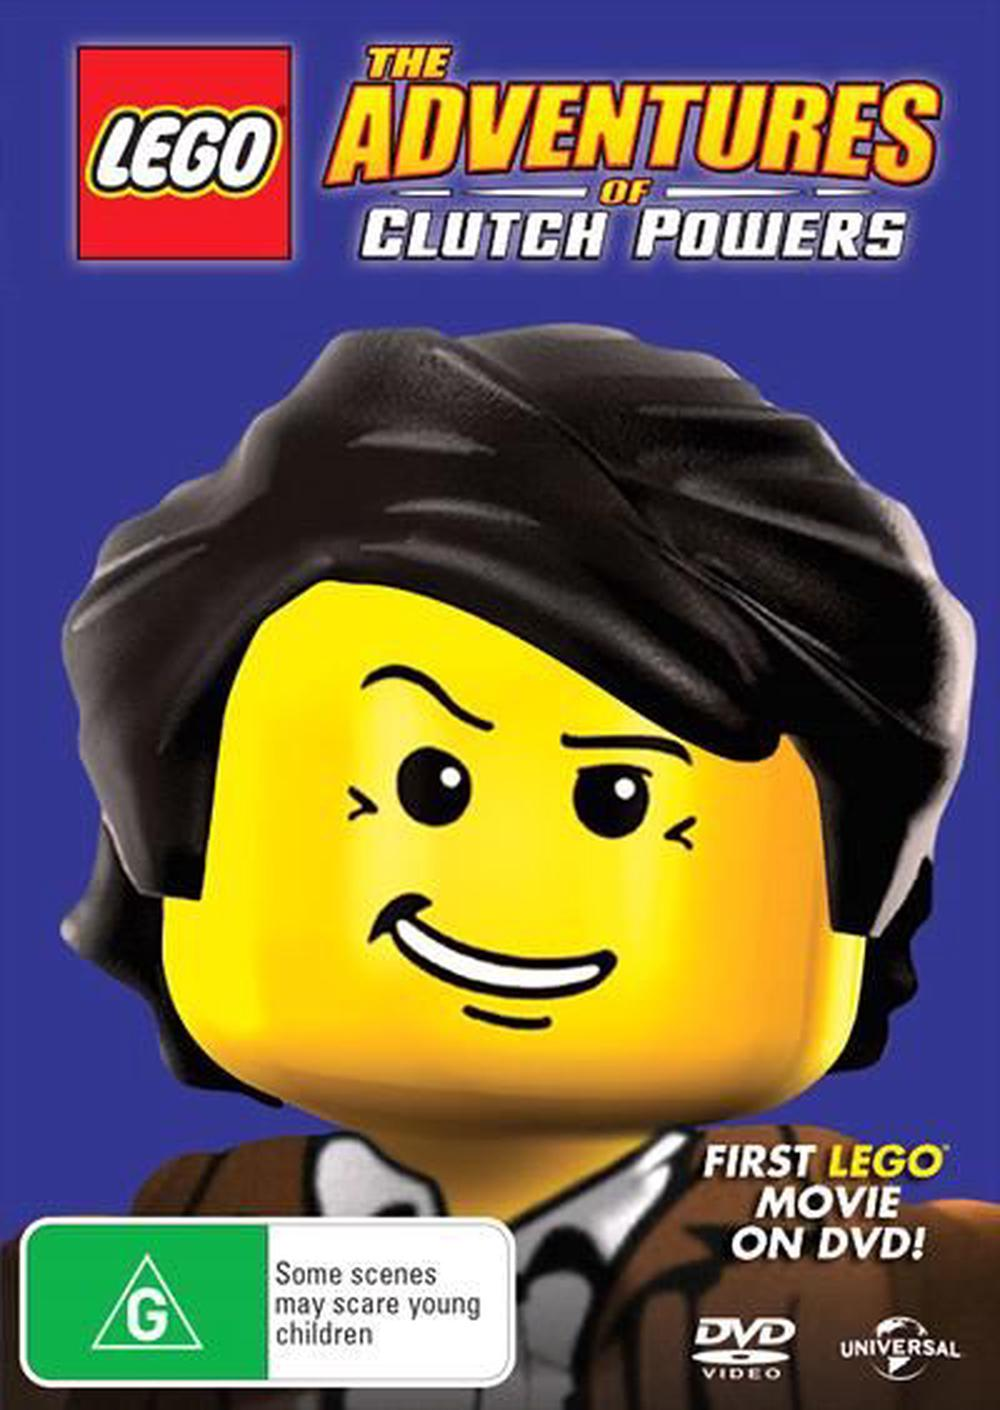 LEGO - The Adventures Of Clutch Powers | Big Face, DVD | Buy